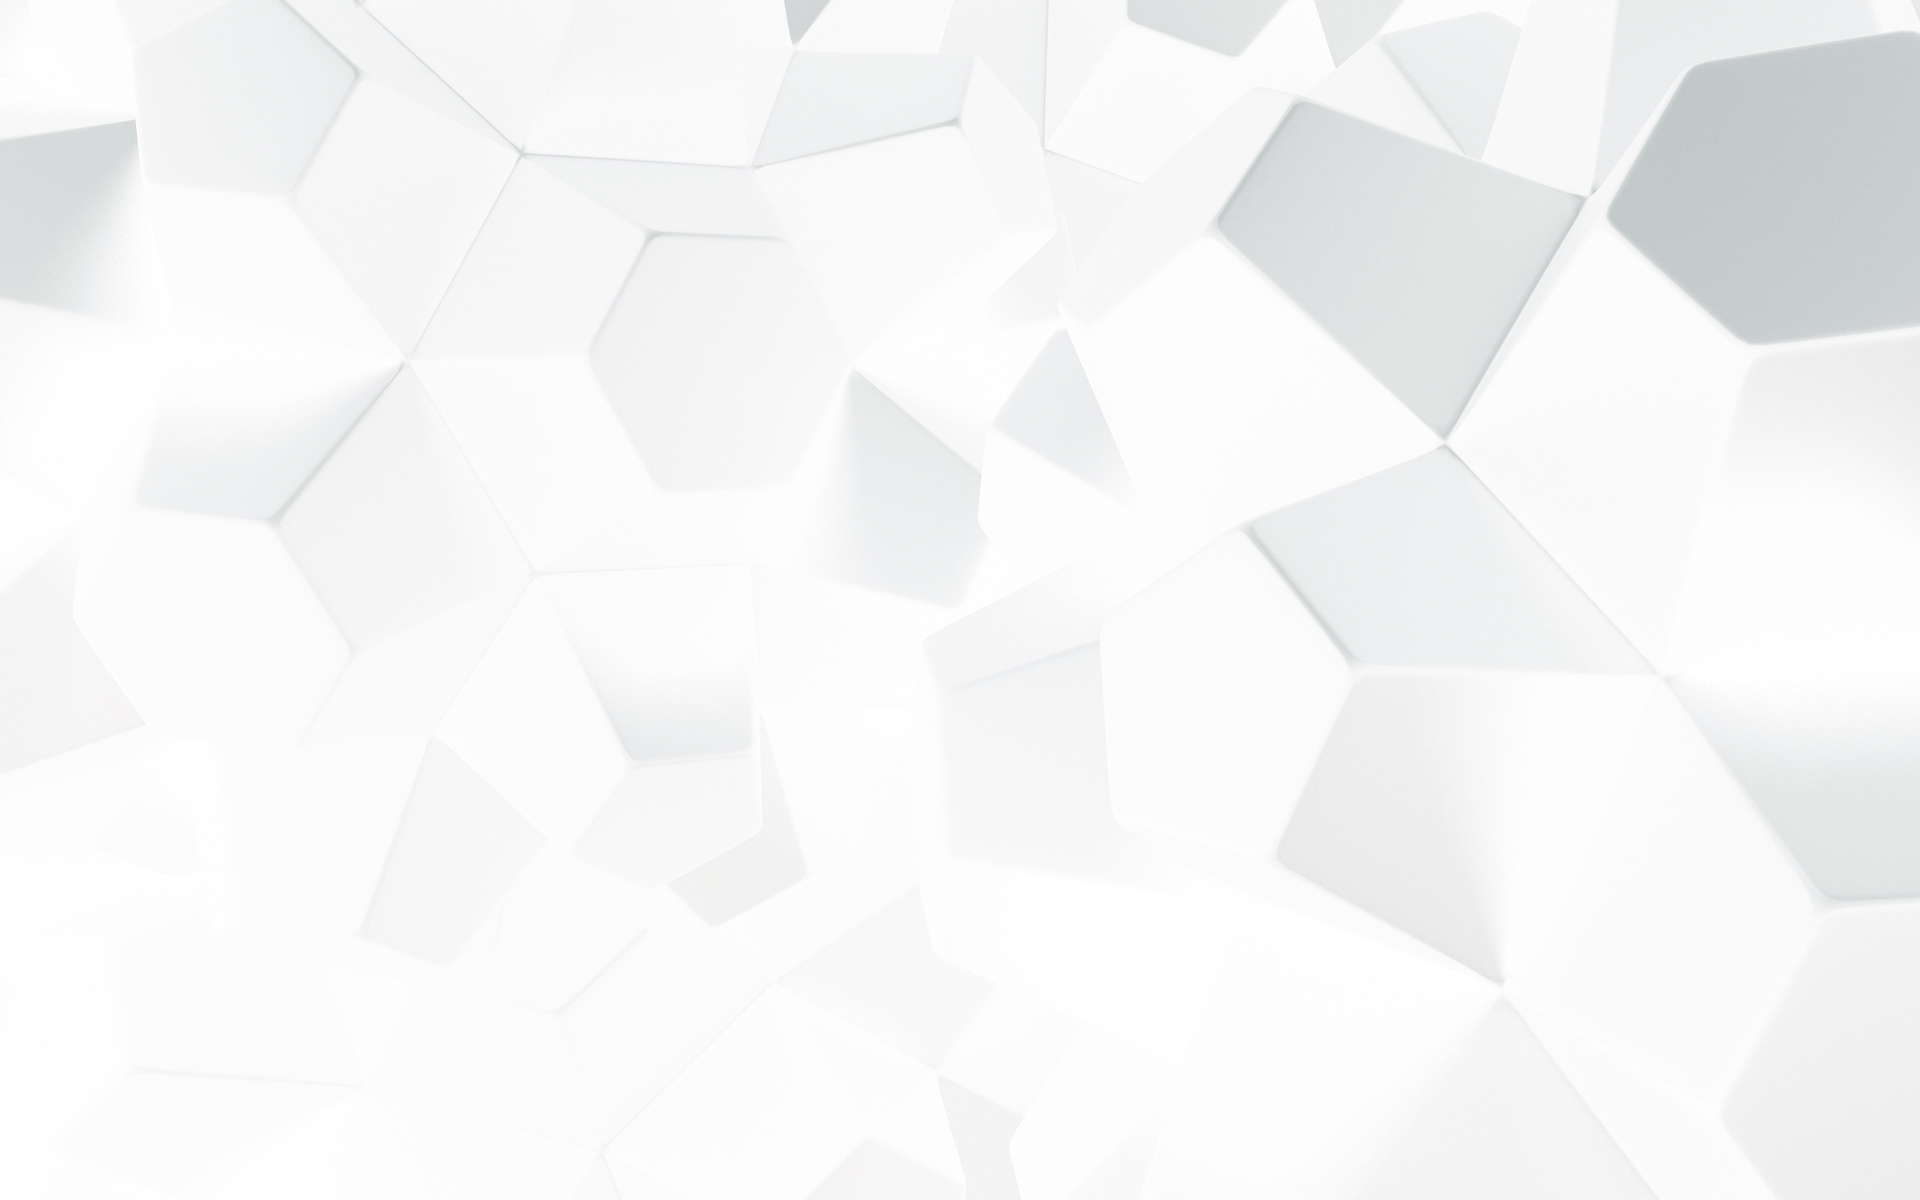 White Wallpapers High Quality | Download Free